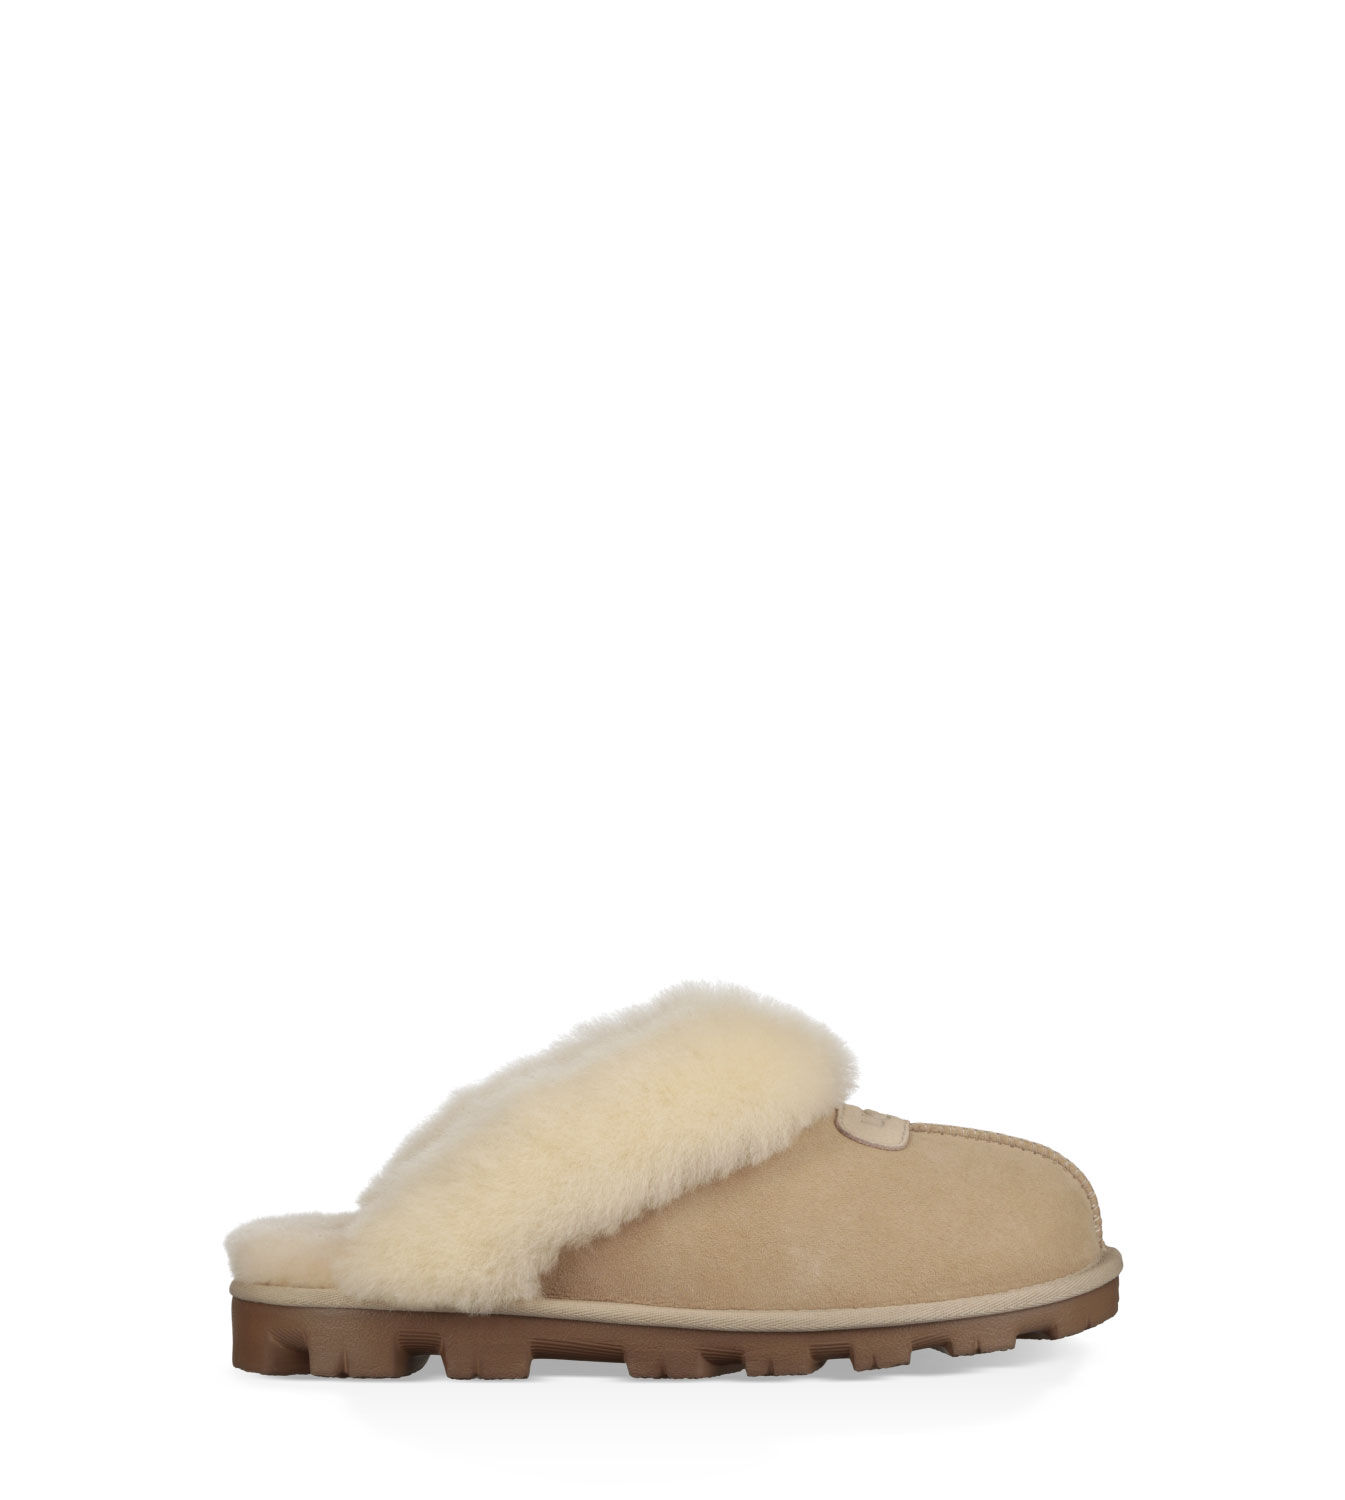 How long do UGG couquette slippers last?